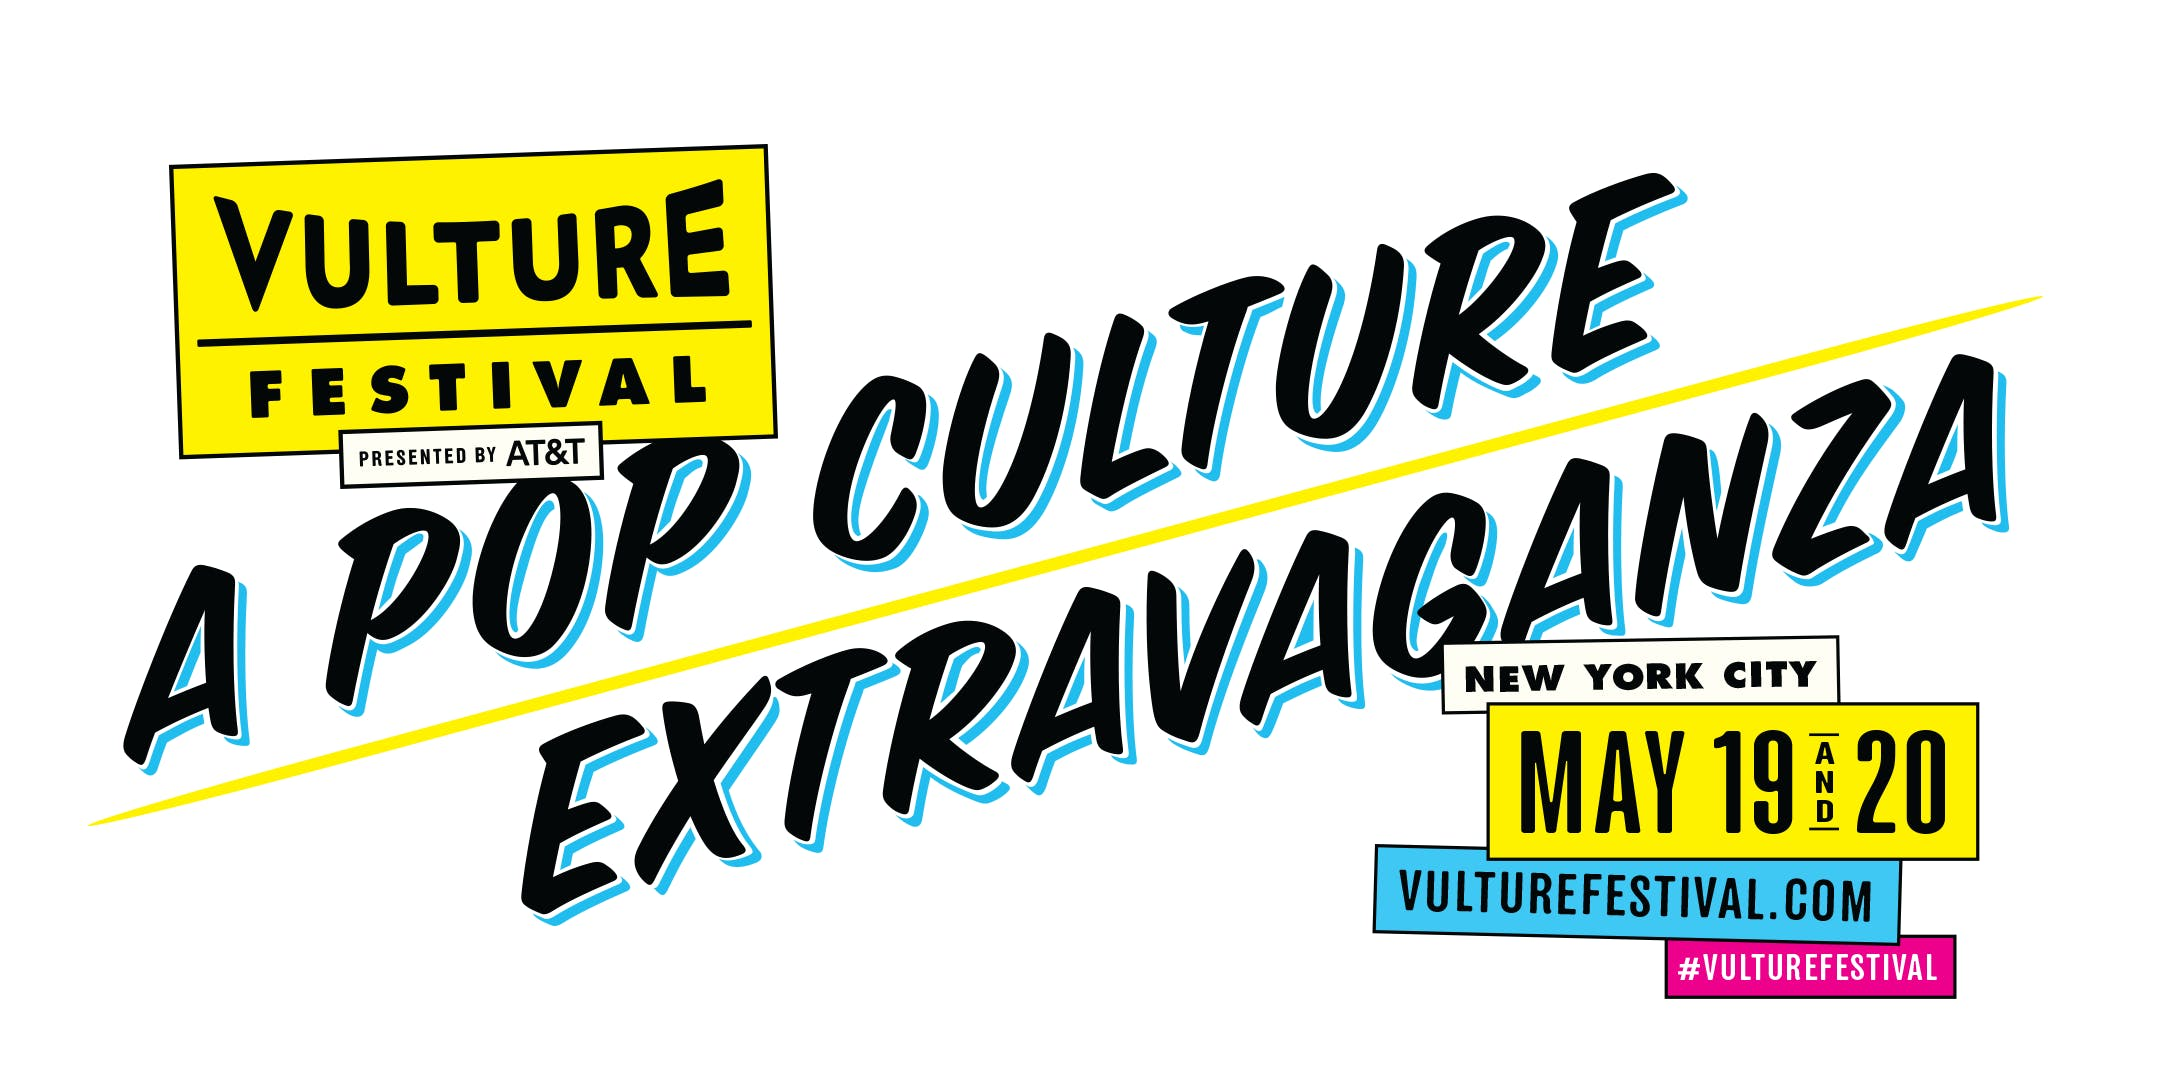 Vulture Festival - REVISITING S-TOWN